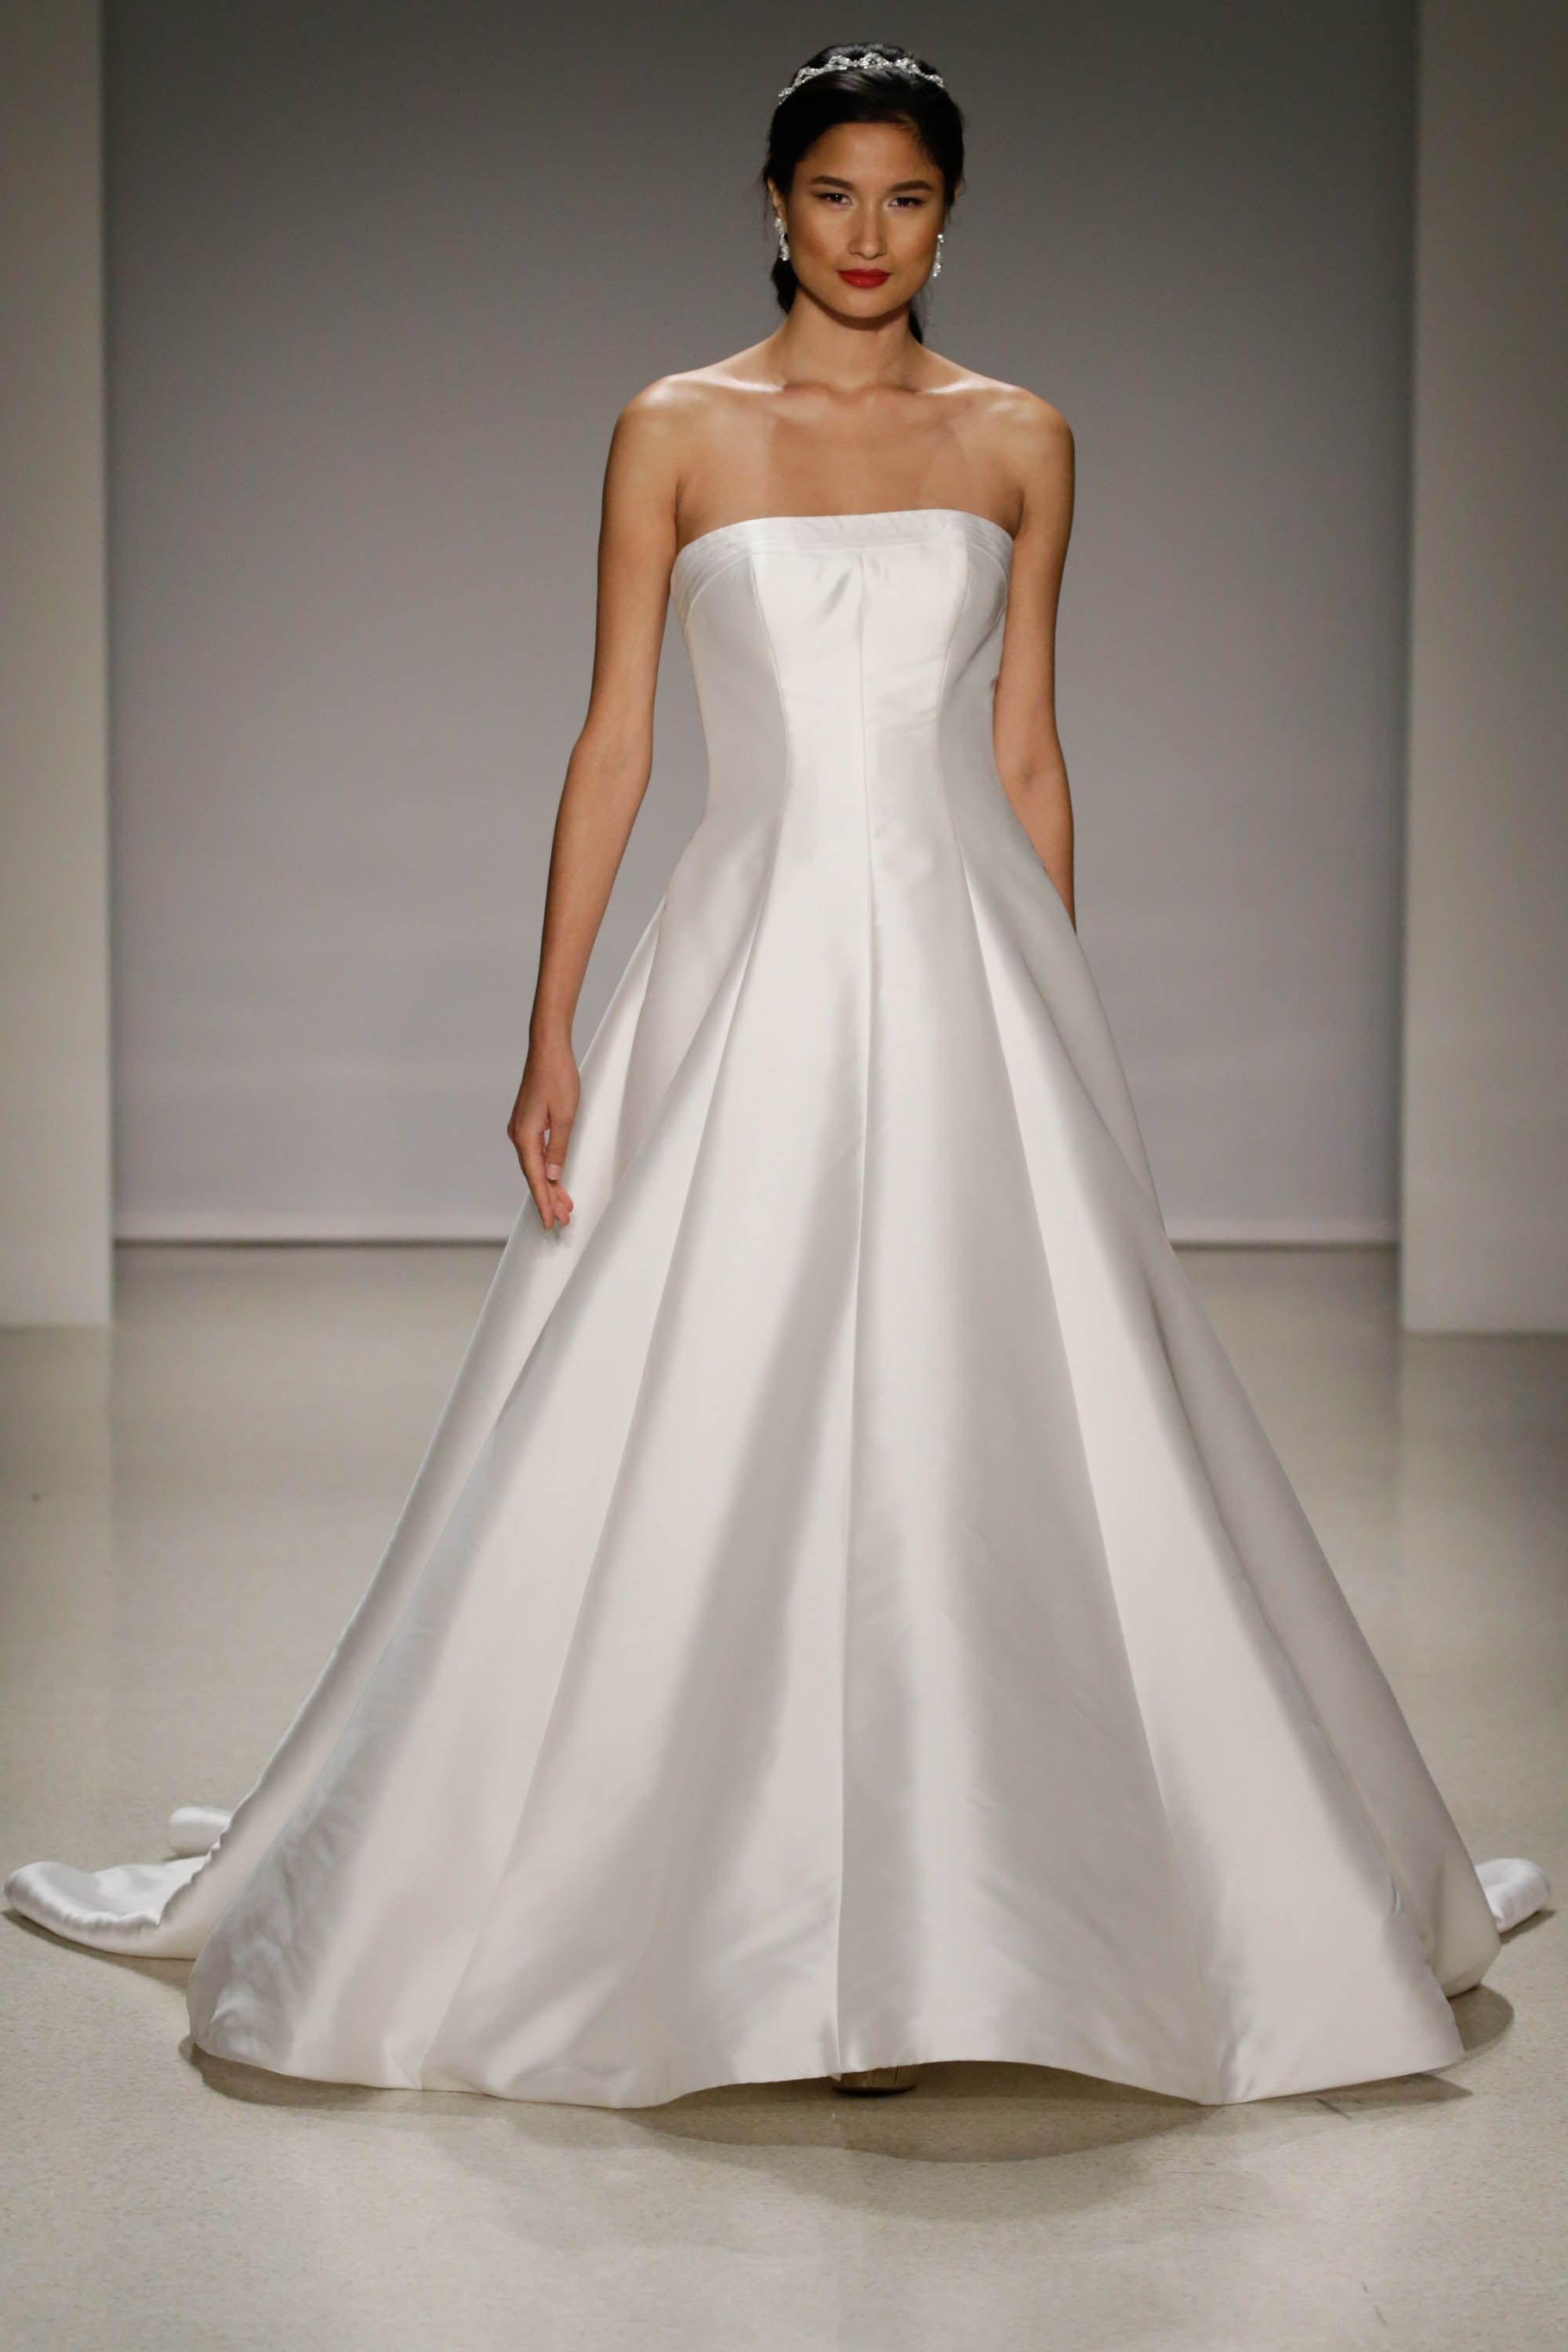 Sleek and sophisticated ball gown wedding dress | Someday My Prince ...